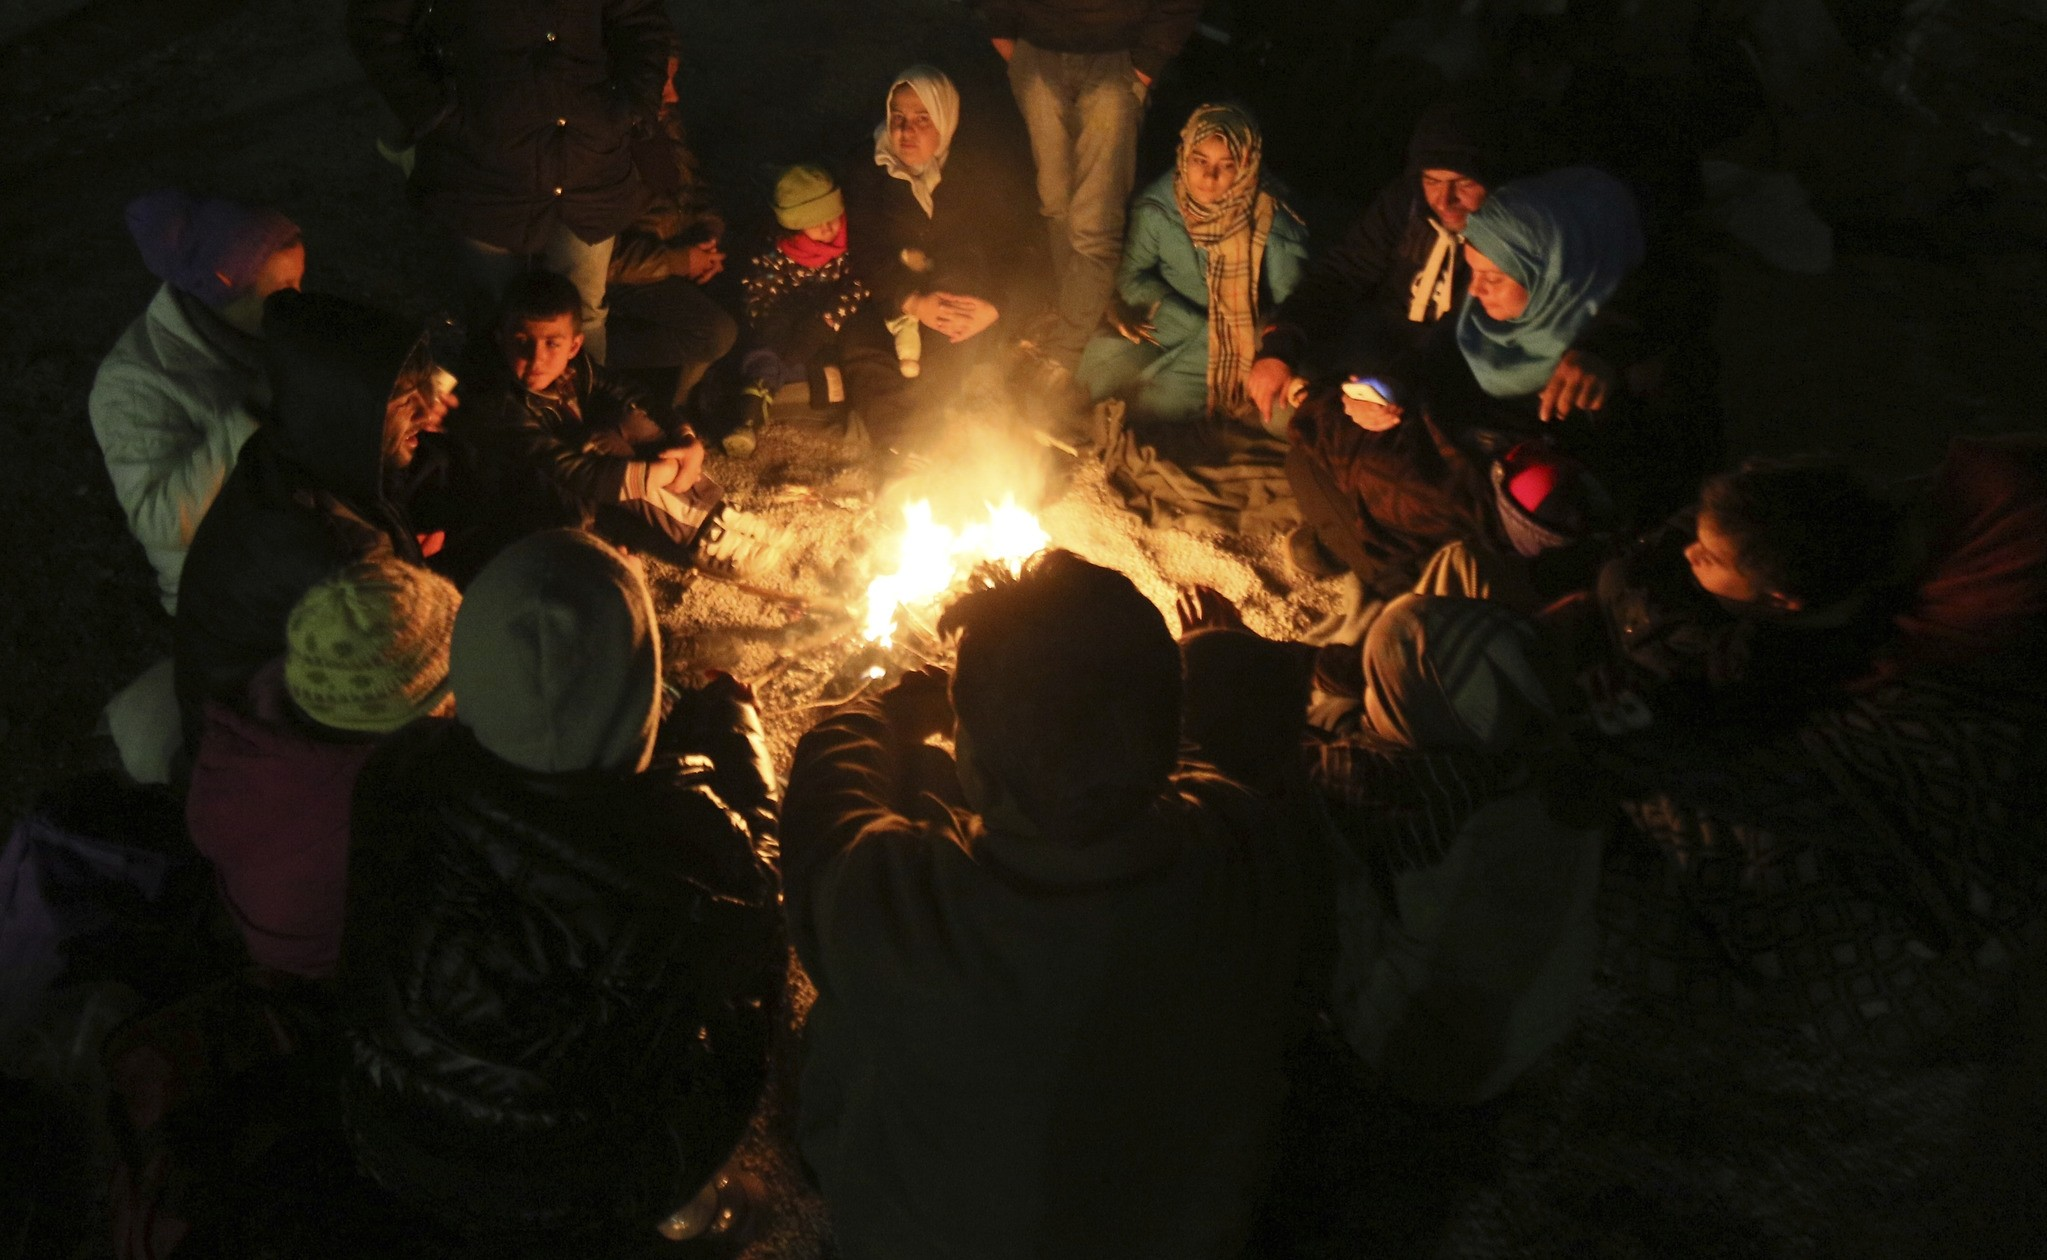 Miigrants sit around a campfire after crossing the border between Slovenian and Austria in Spielfeld, Austria. (AP Photo)